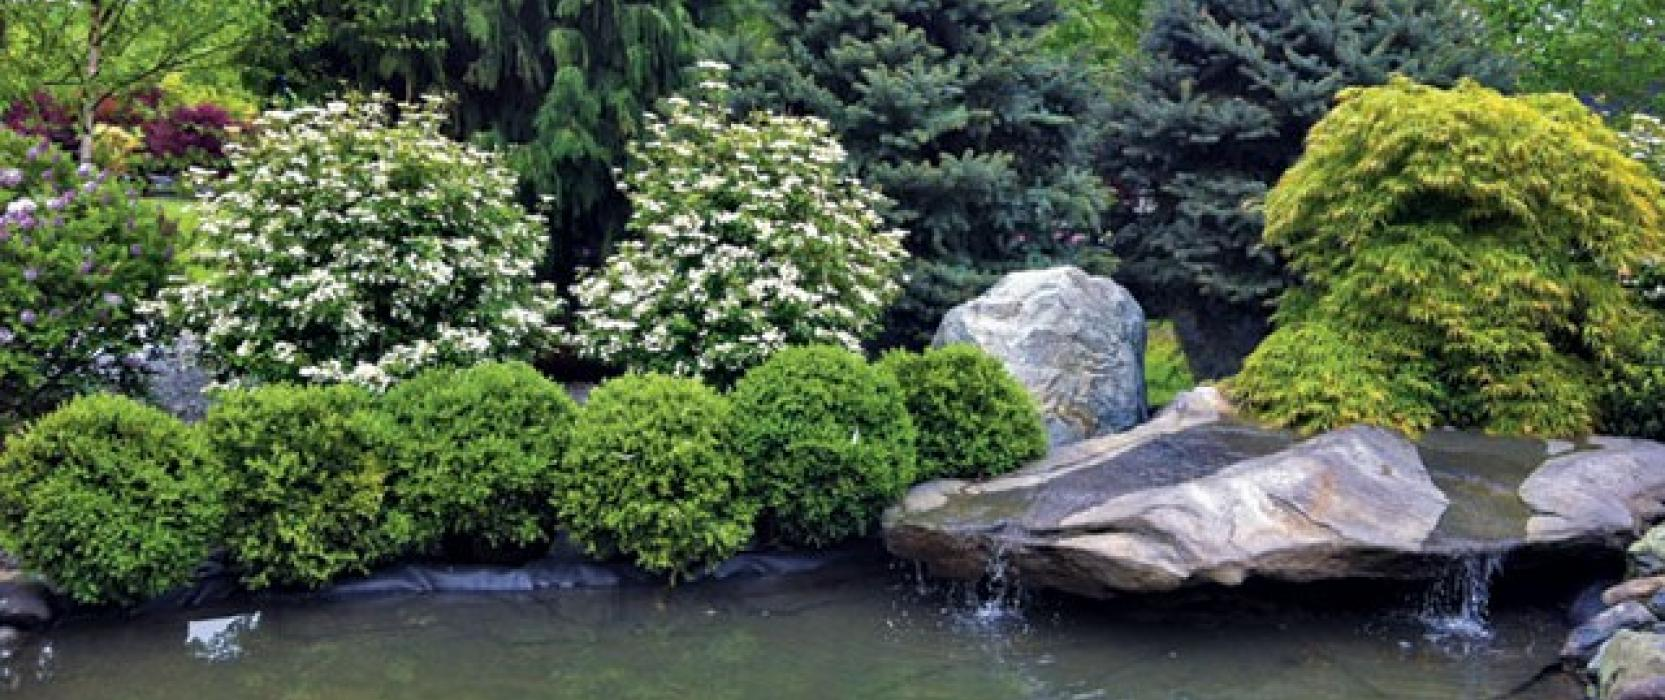 Landscape by Select Horticulture, Inc.